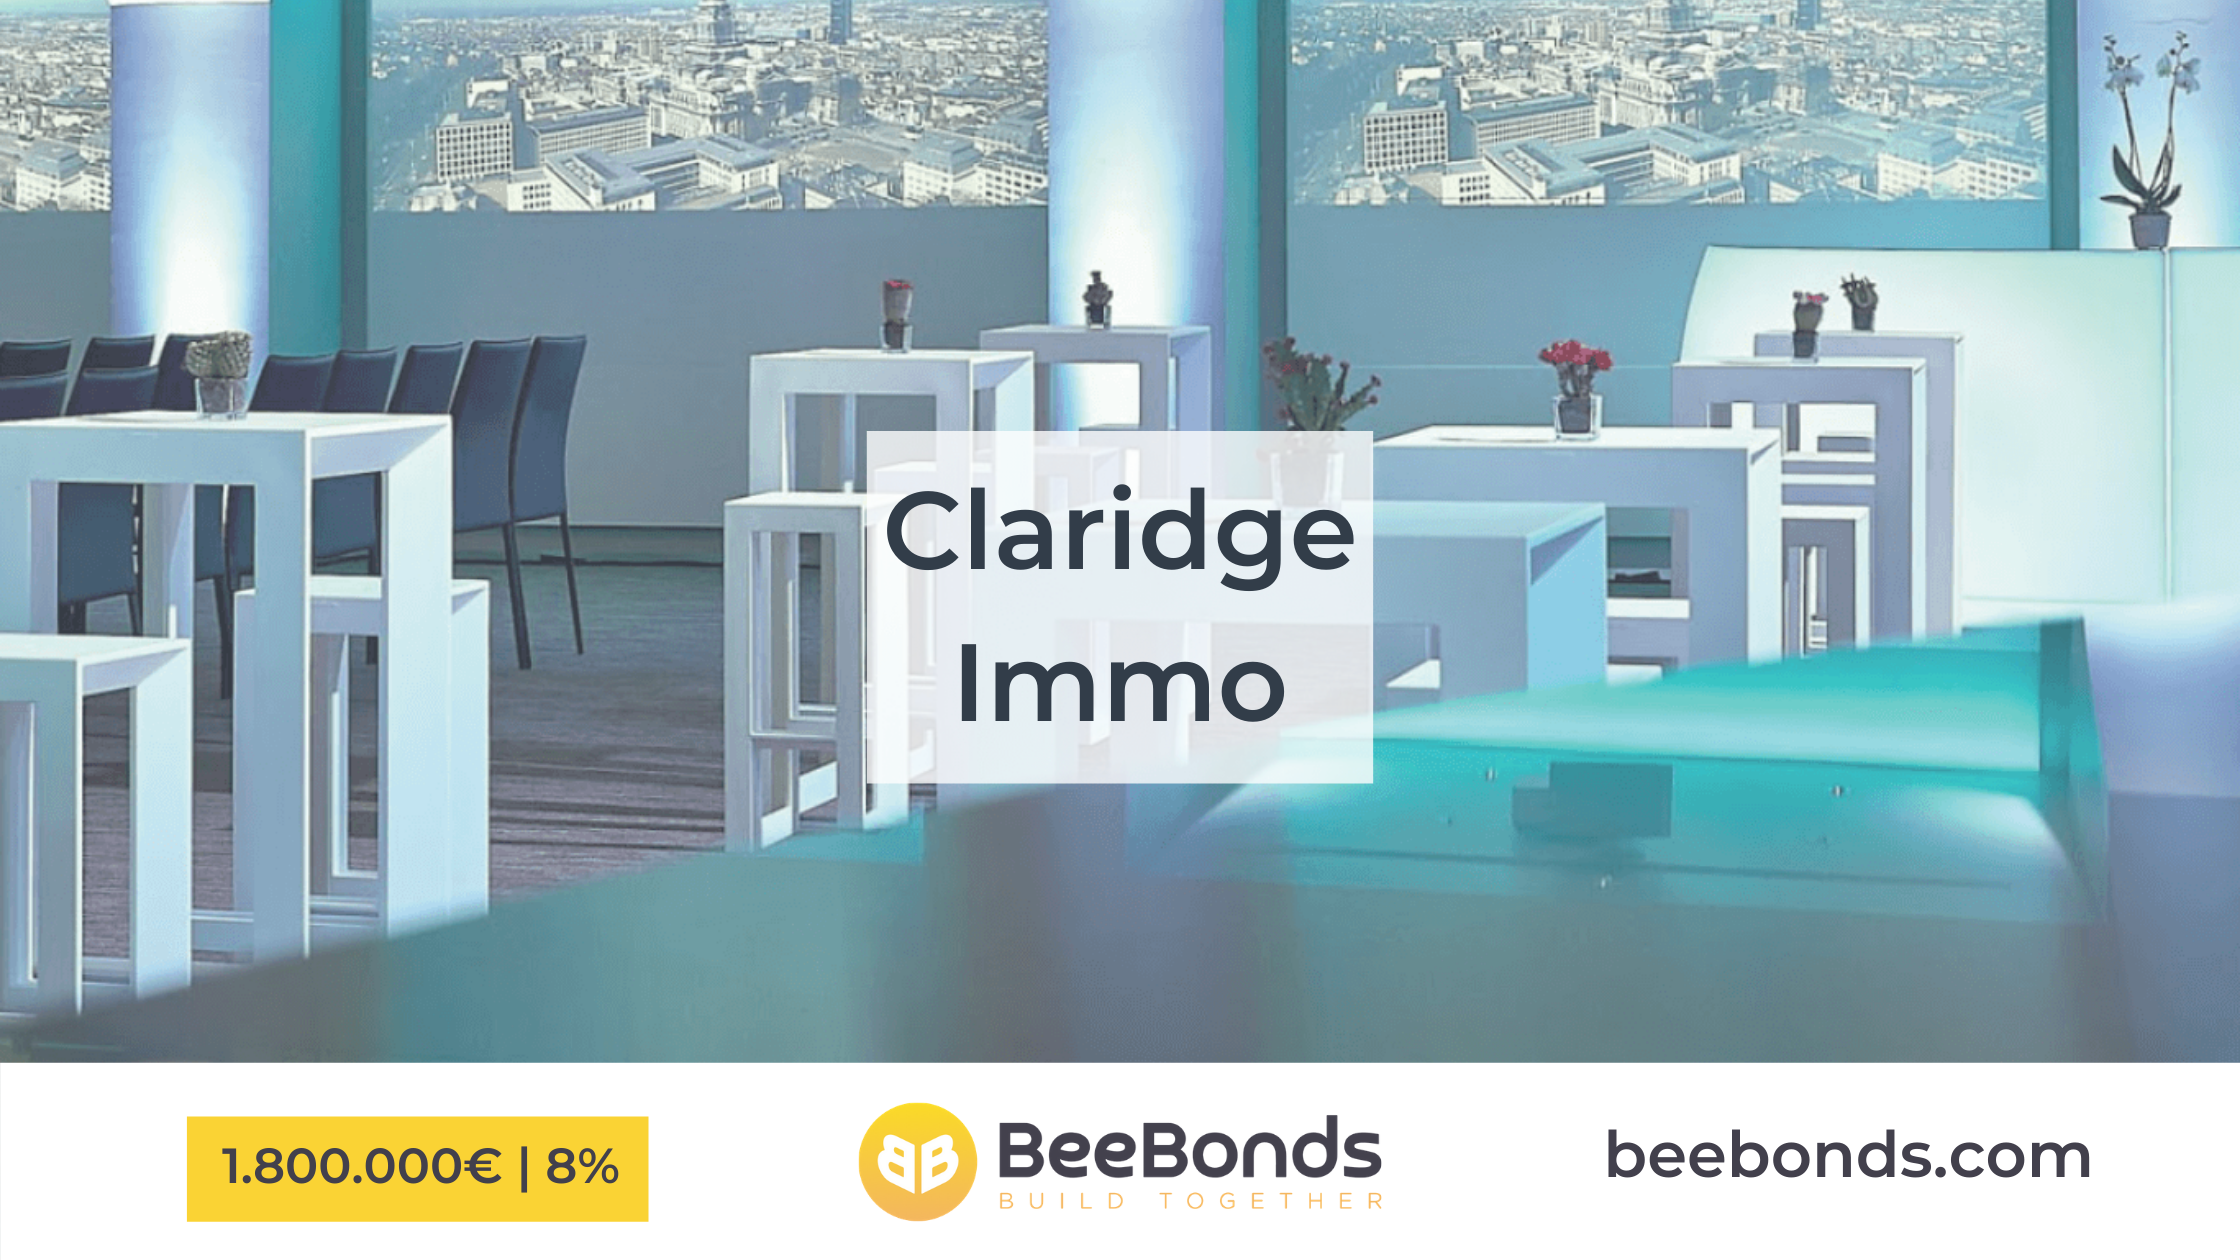 Beebonds%20 %20Campaigns%20Covers%20(4)